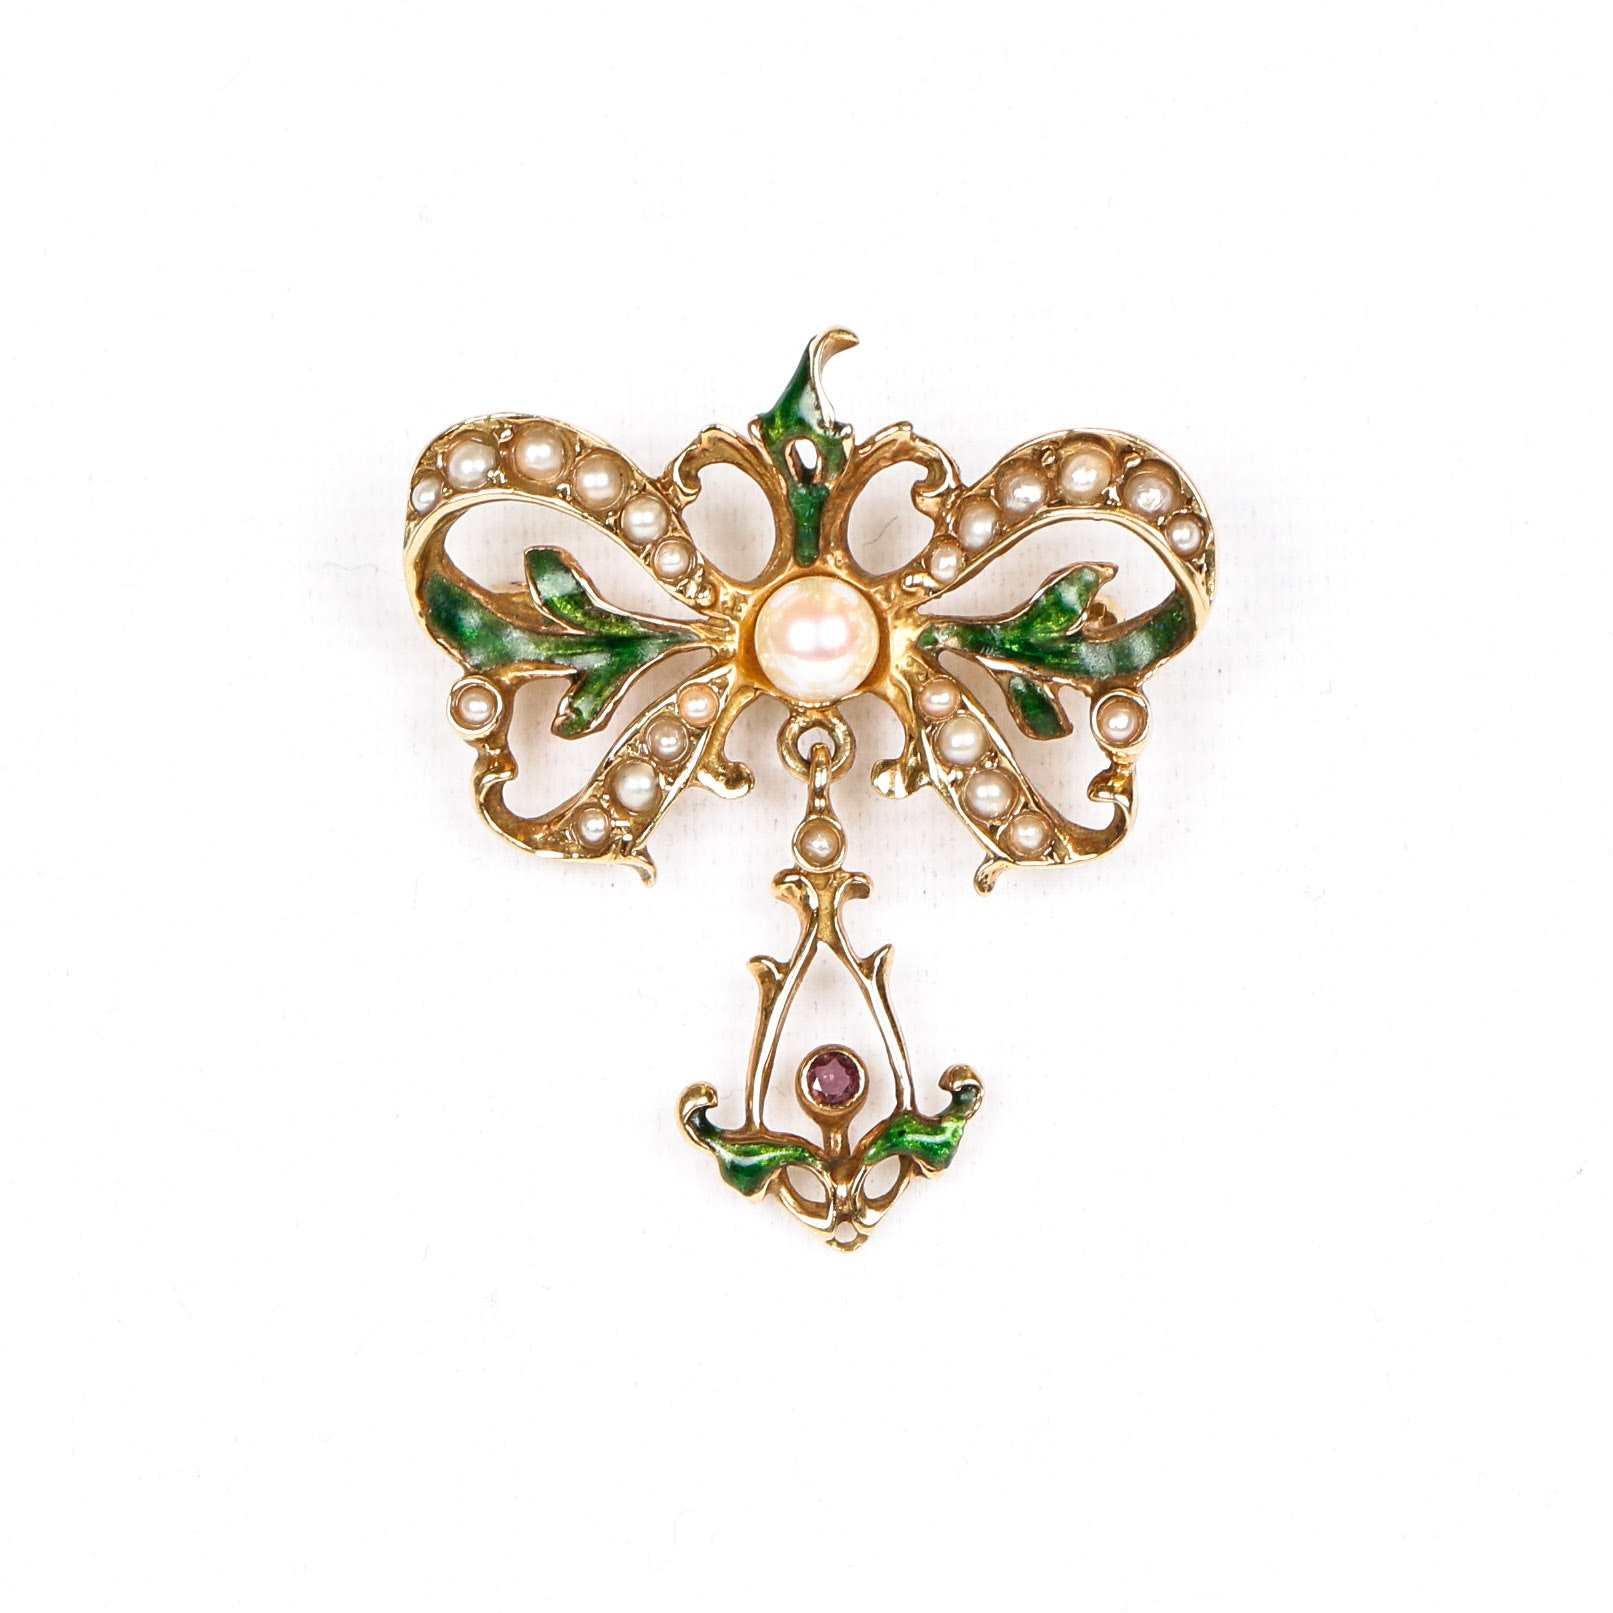 Vintage 14K Gold, Cultured Pearl, Ruby and Enamel Brooch